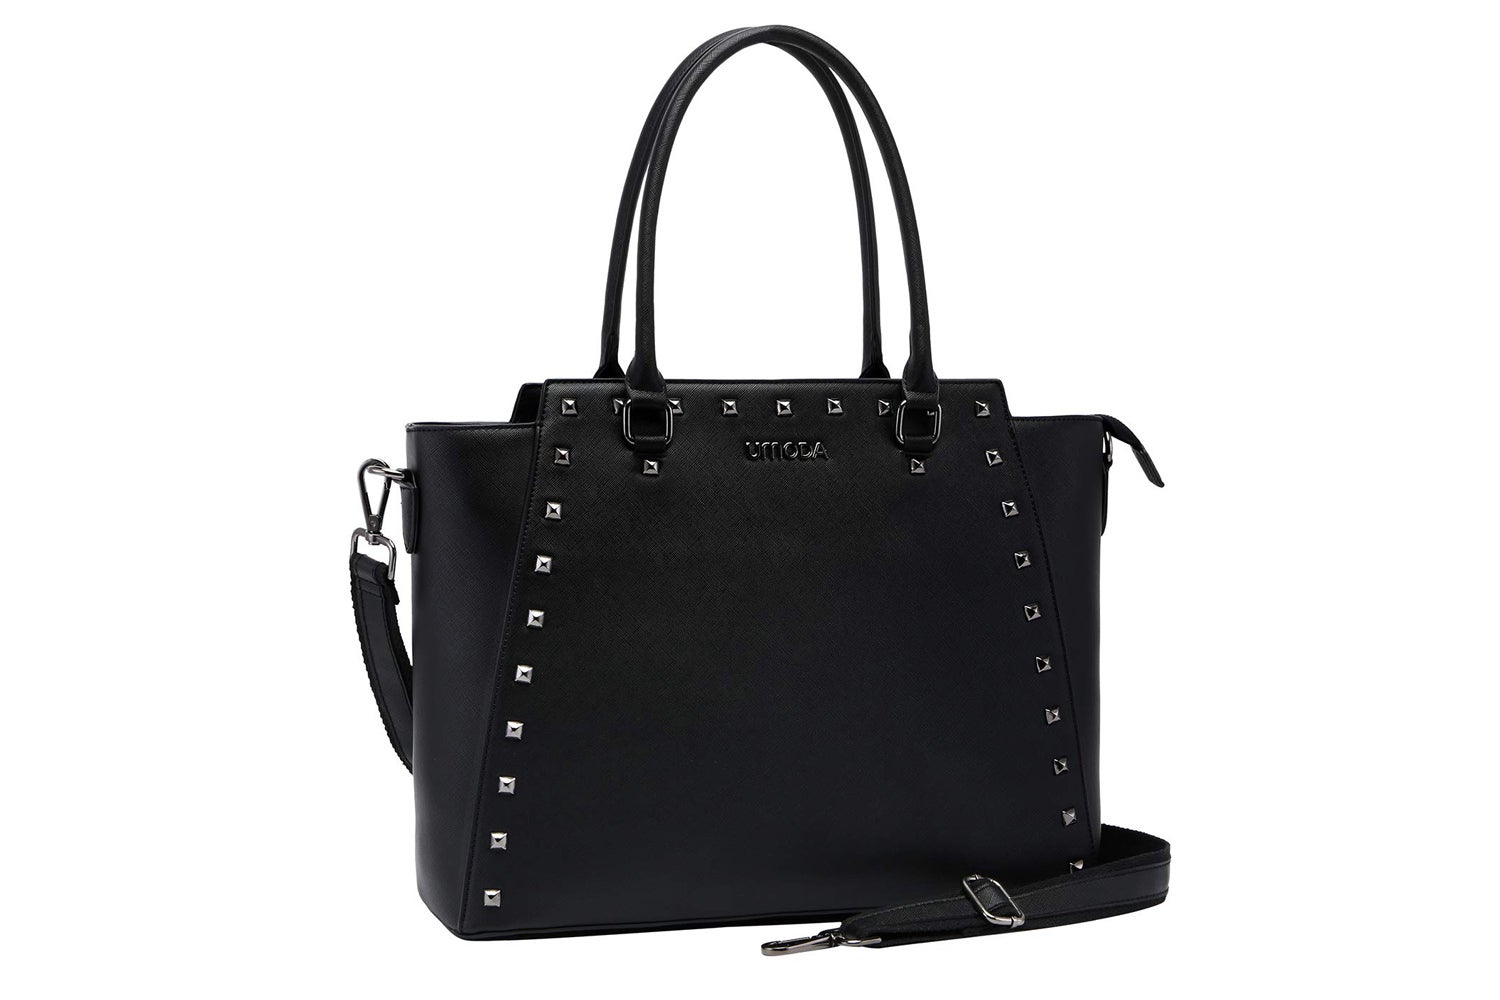 Laptop tote 15.6 Inch Long Strap, classic Black with modern studded design.